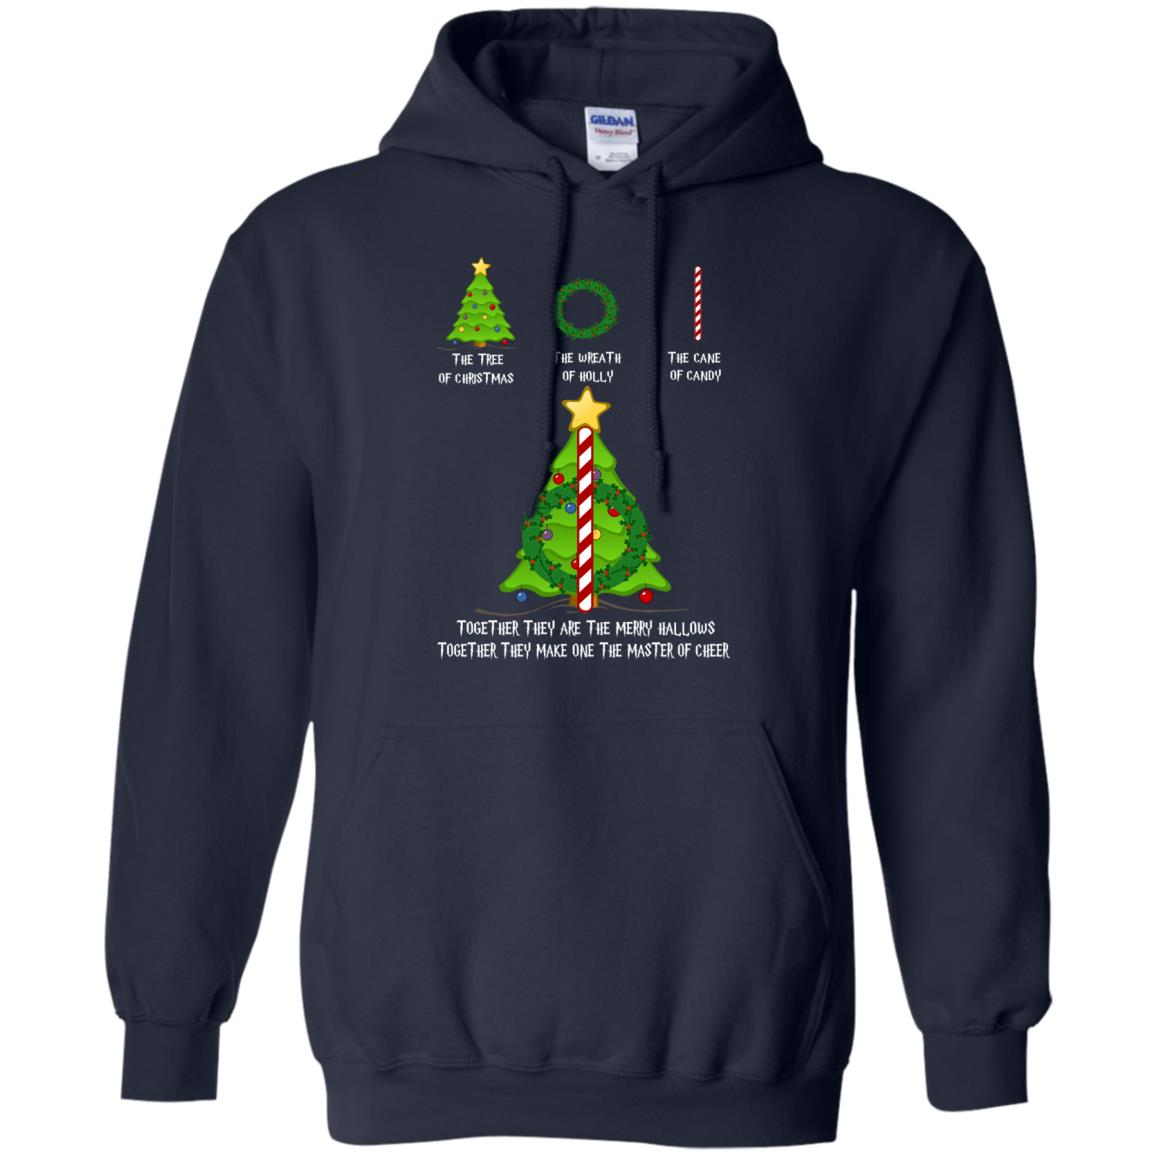 image 378px The Tree Of Christmas The Wreath of Holly The Cane Of Candy T Shirts